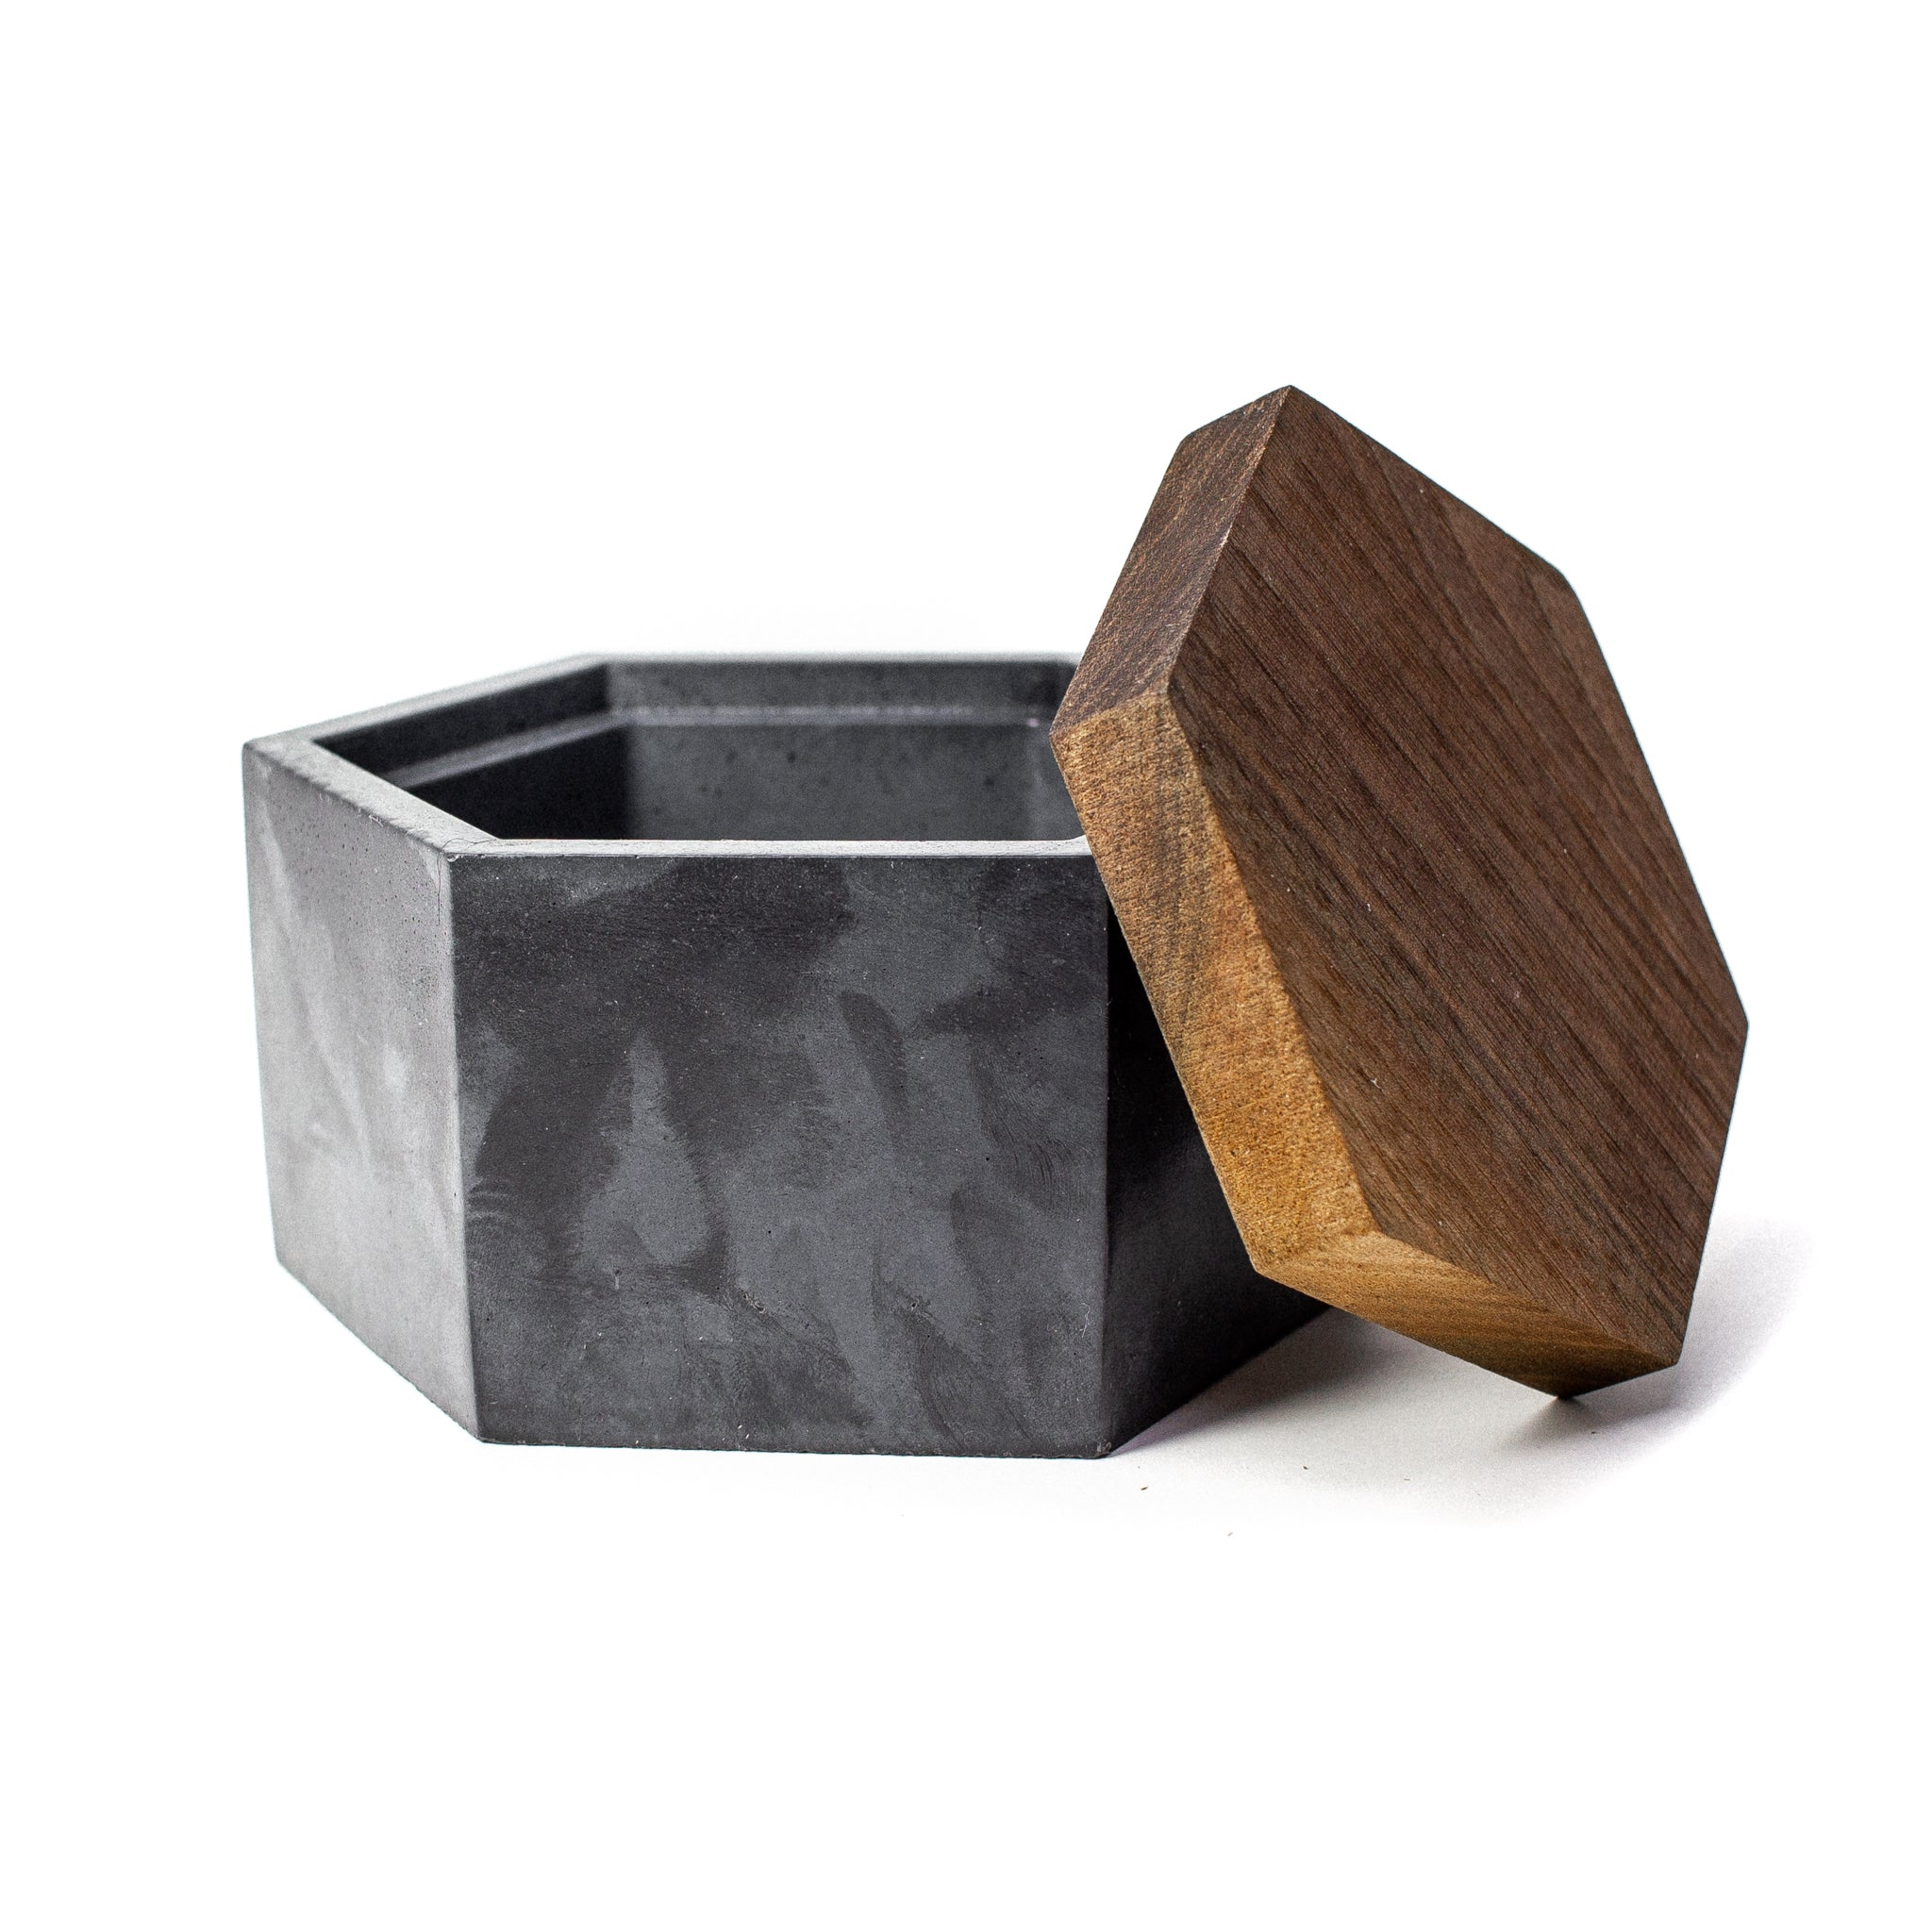 Concrete Hexagon Box (Carbon Black) with Wooden Lid